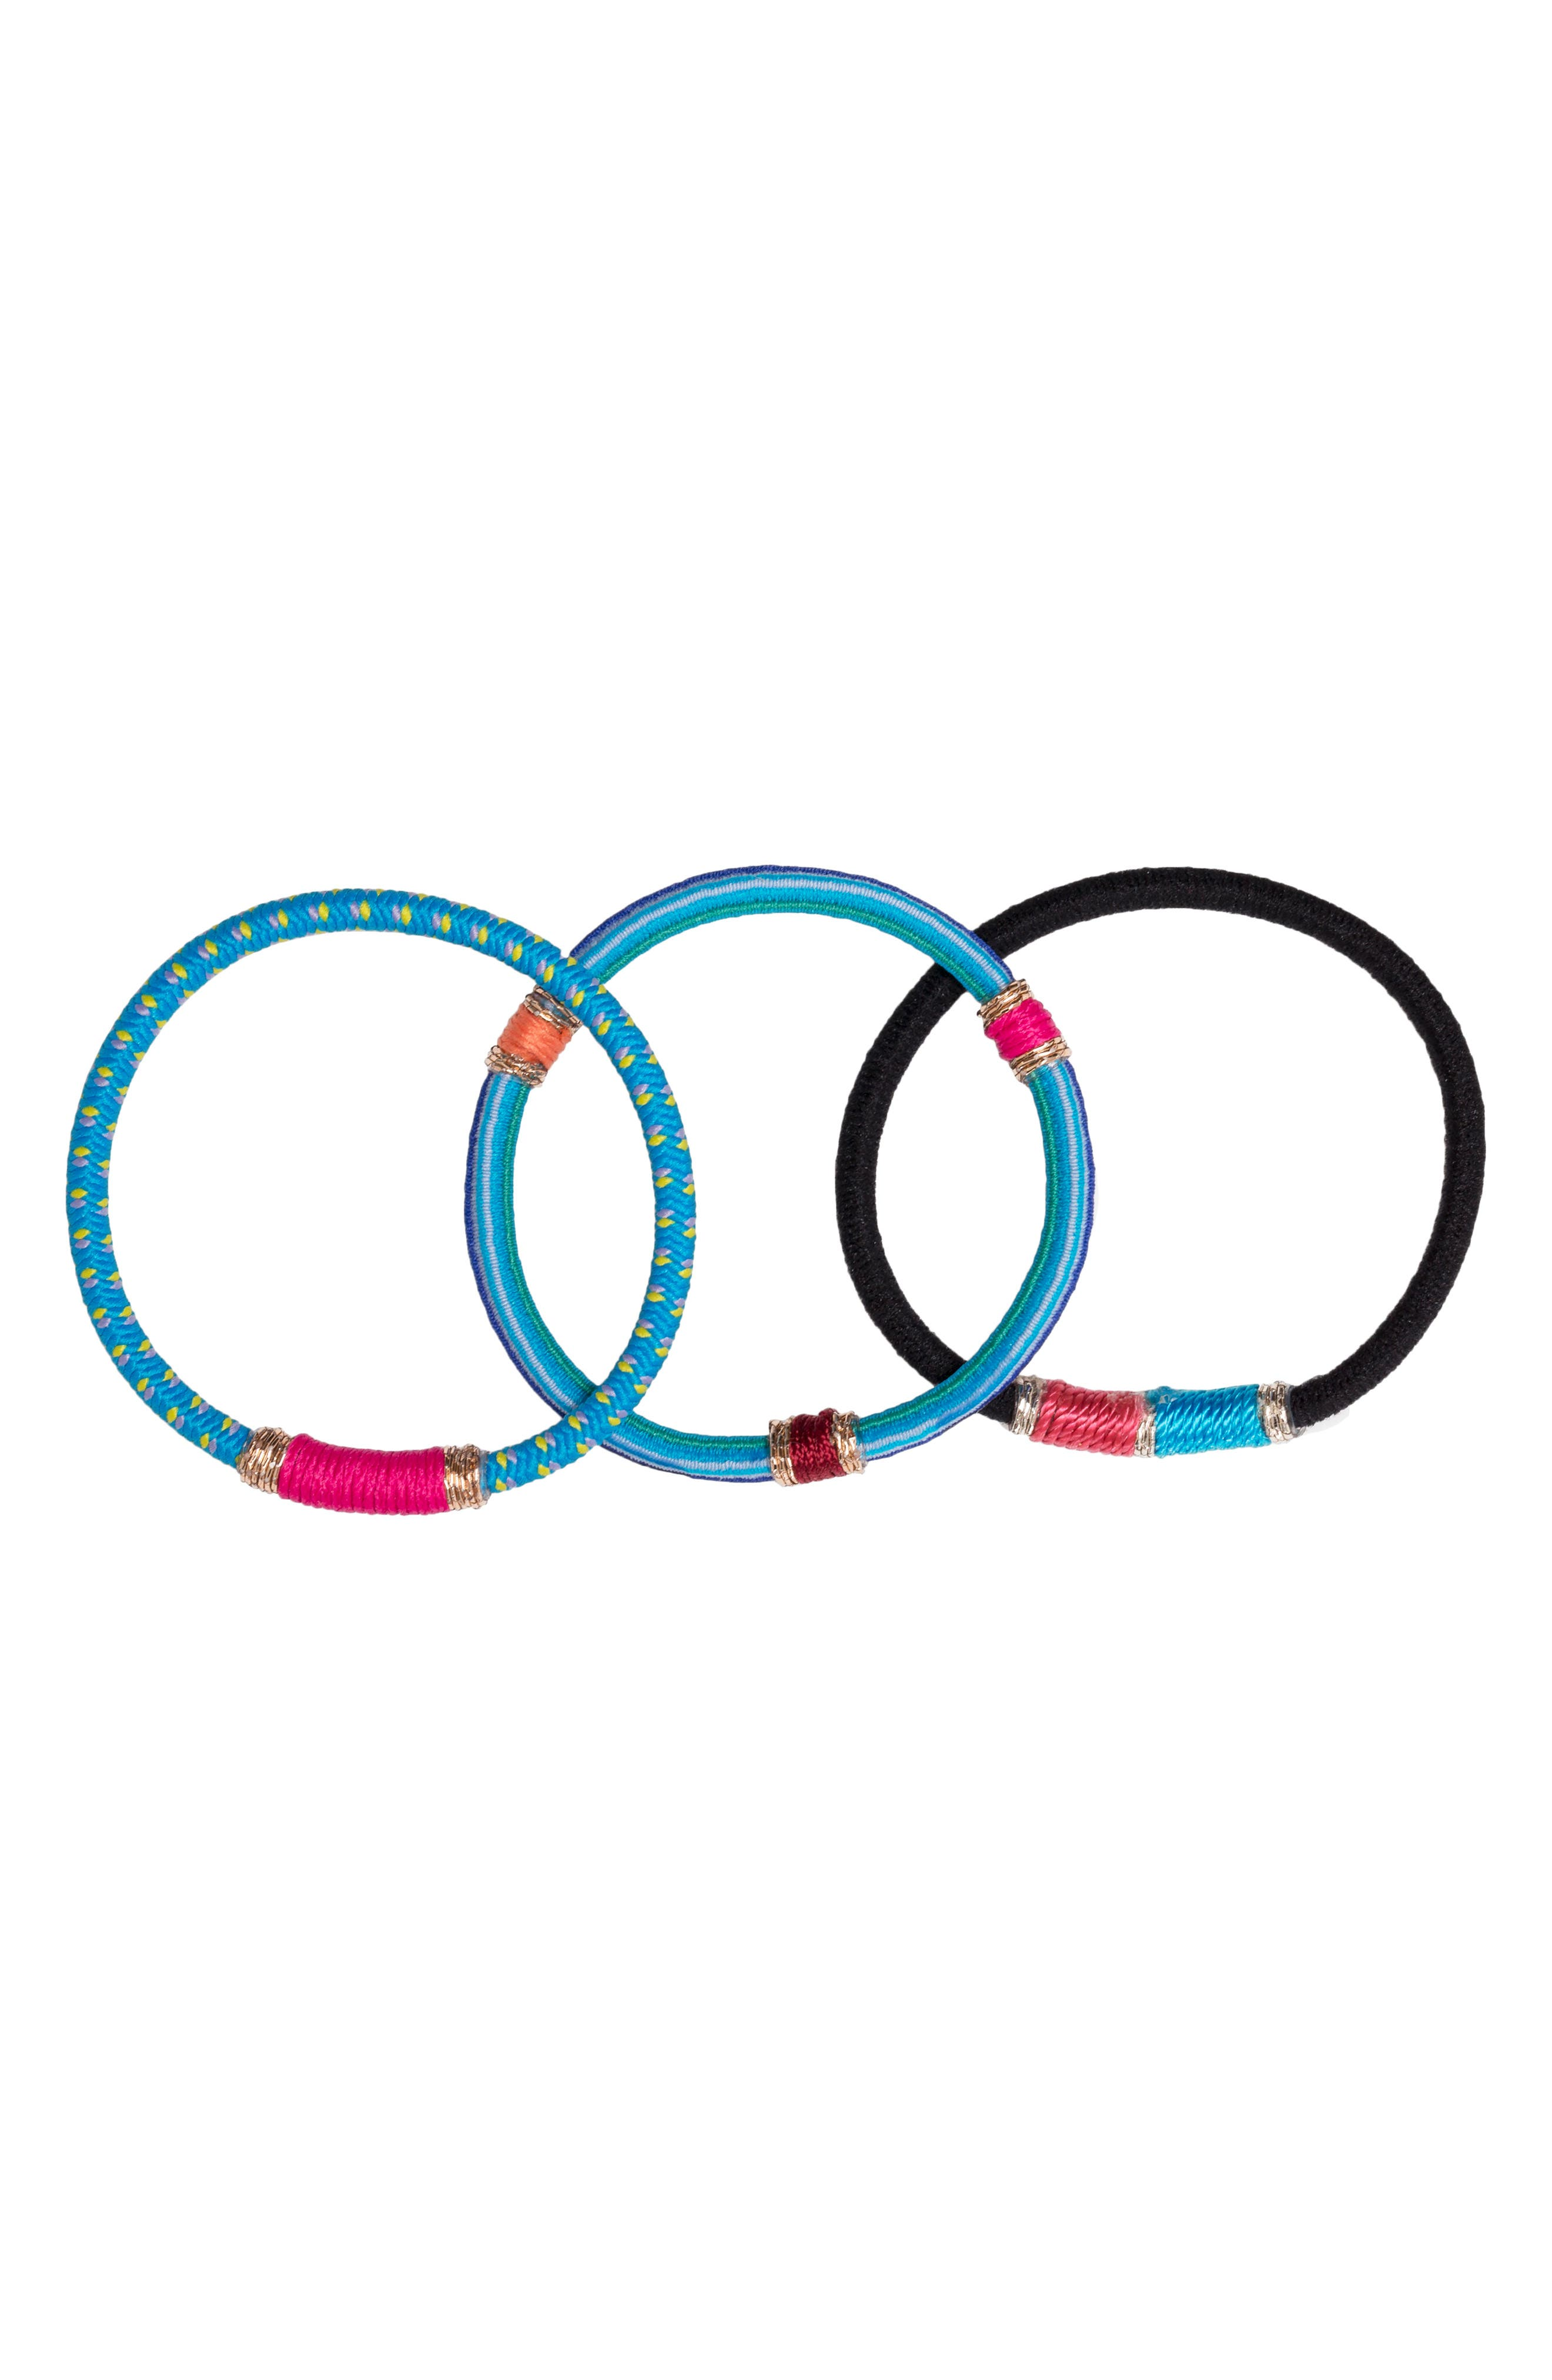 Moroccan Set of 3 Ponytail Holders,                             Alternate thumbnail 2, color,                             460